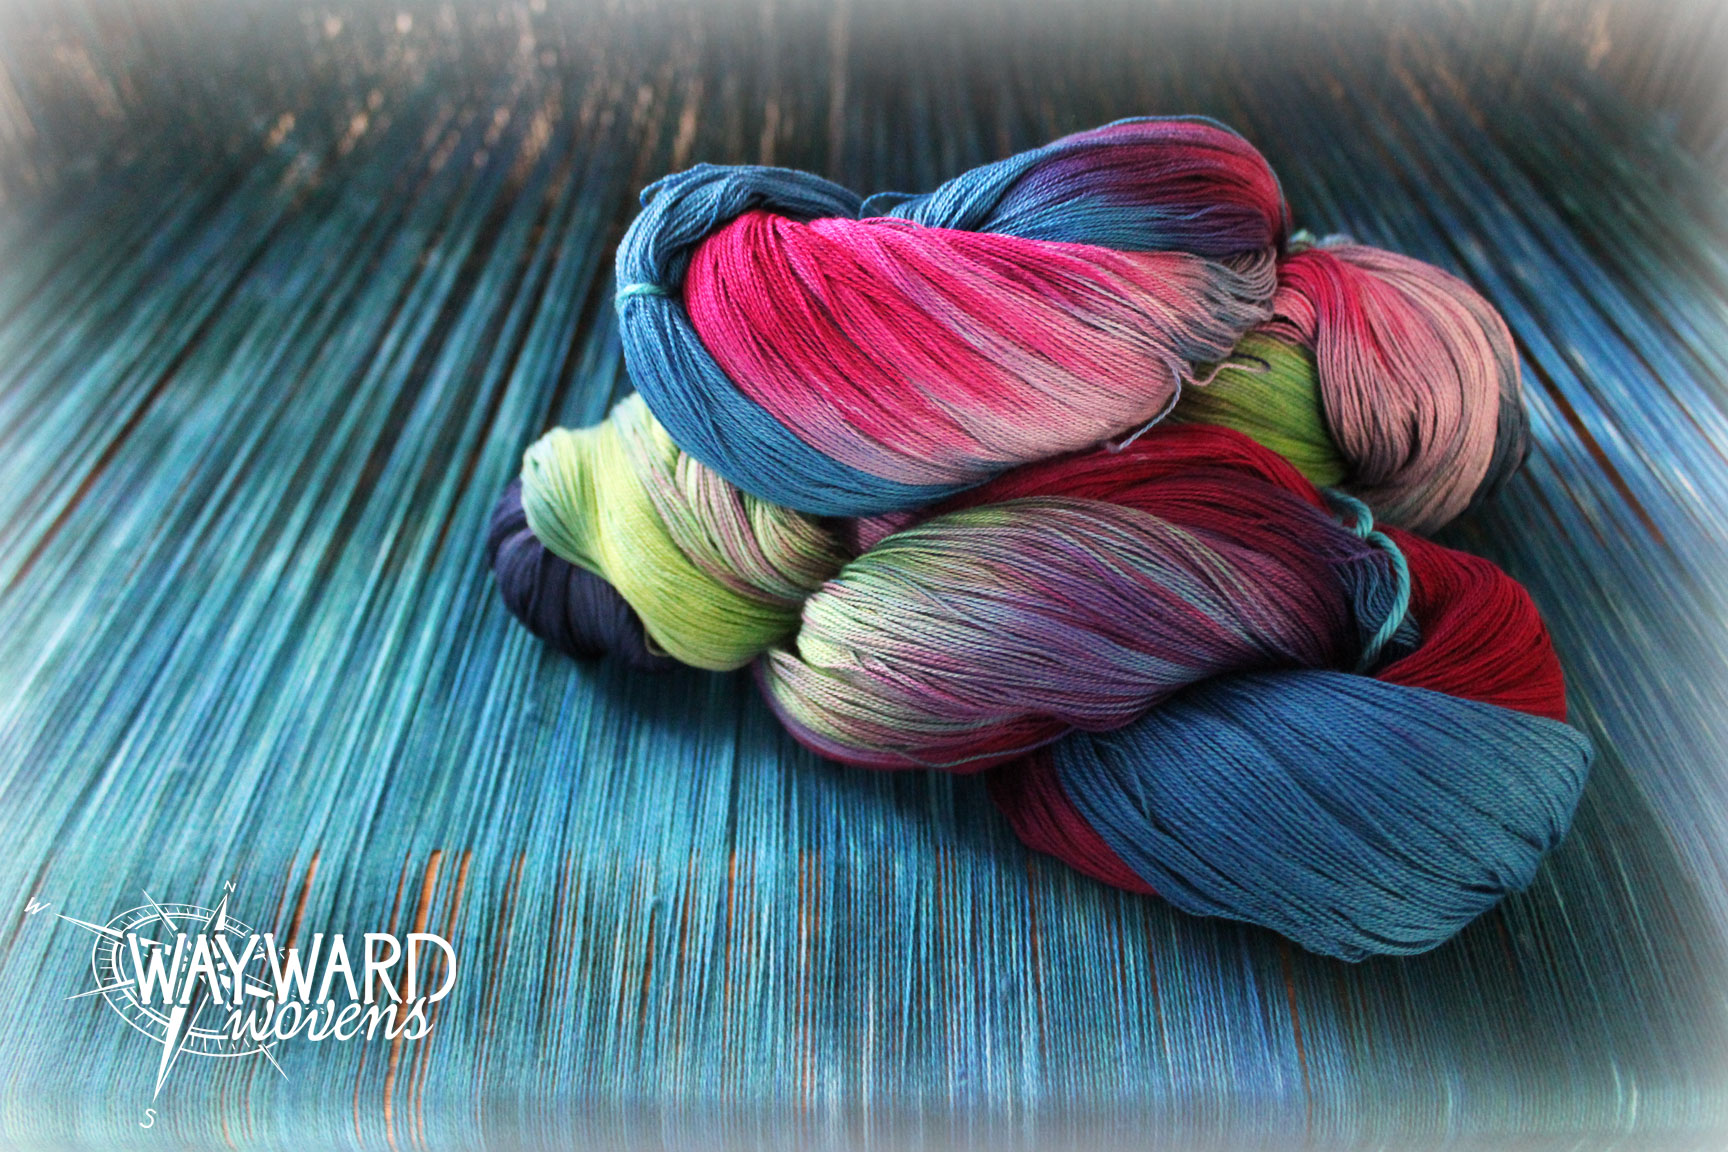 Warp threads with hand dyed skein